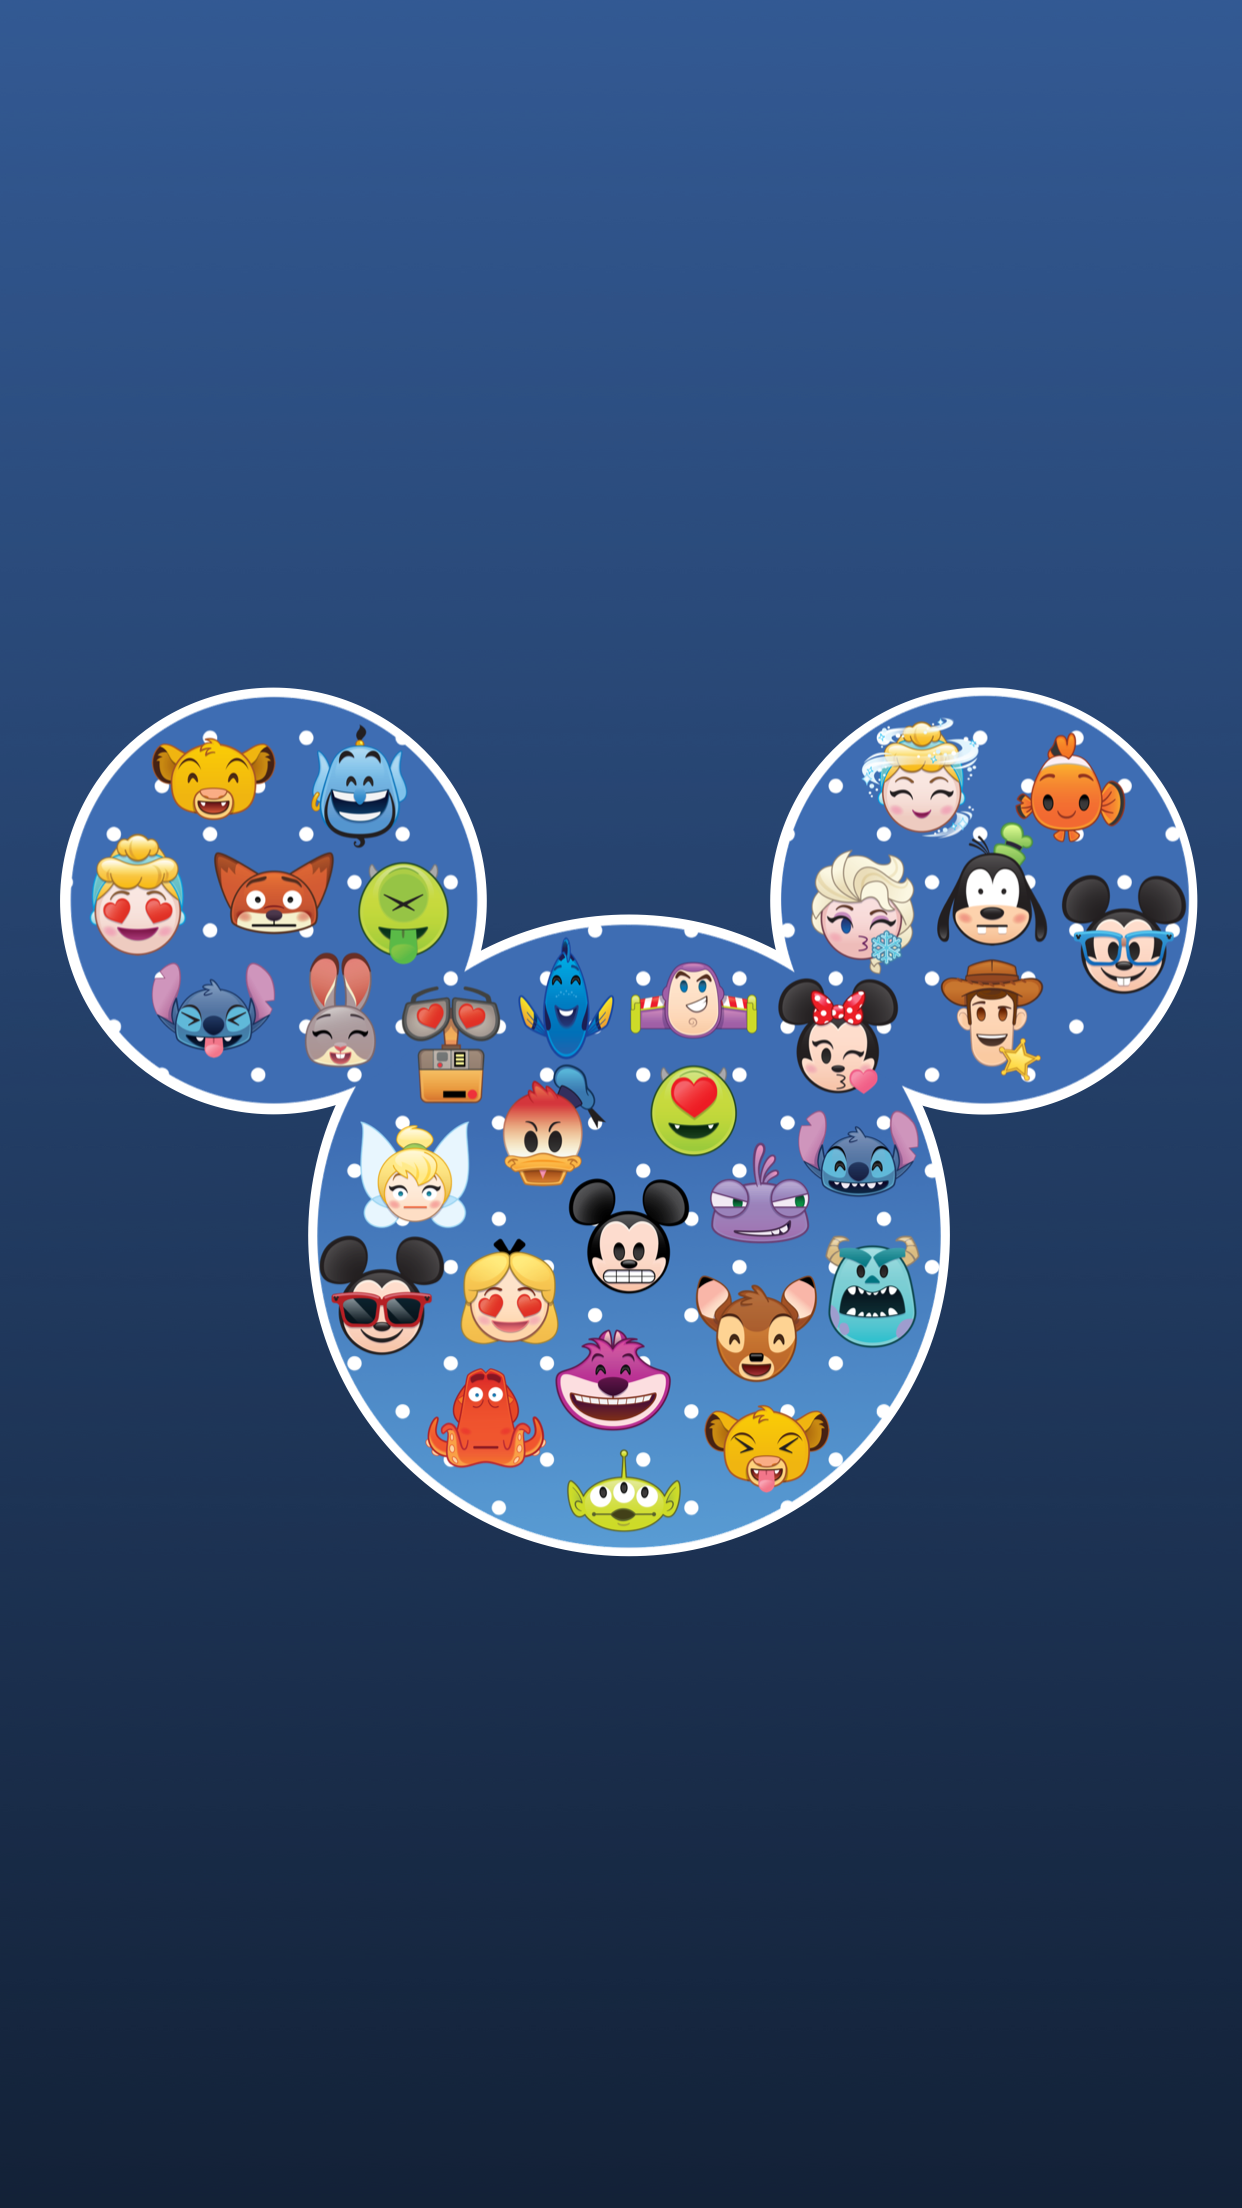 Disney Emoji blitz phone wallpaper Disney emoji blitz